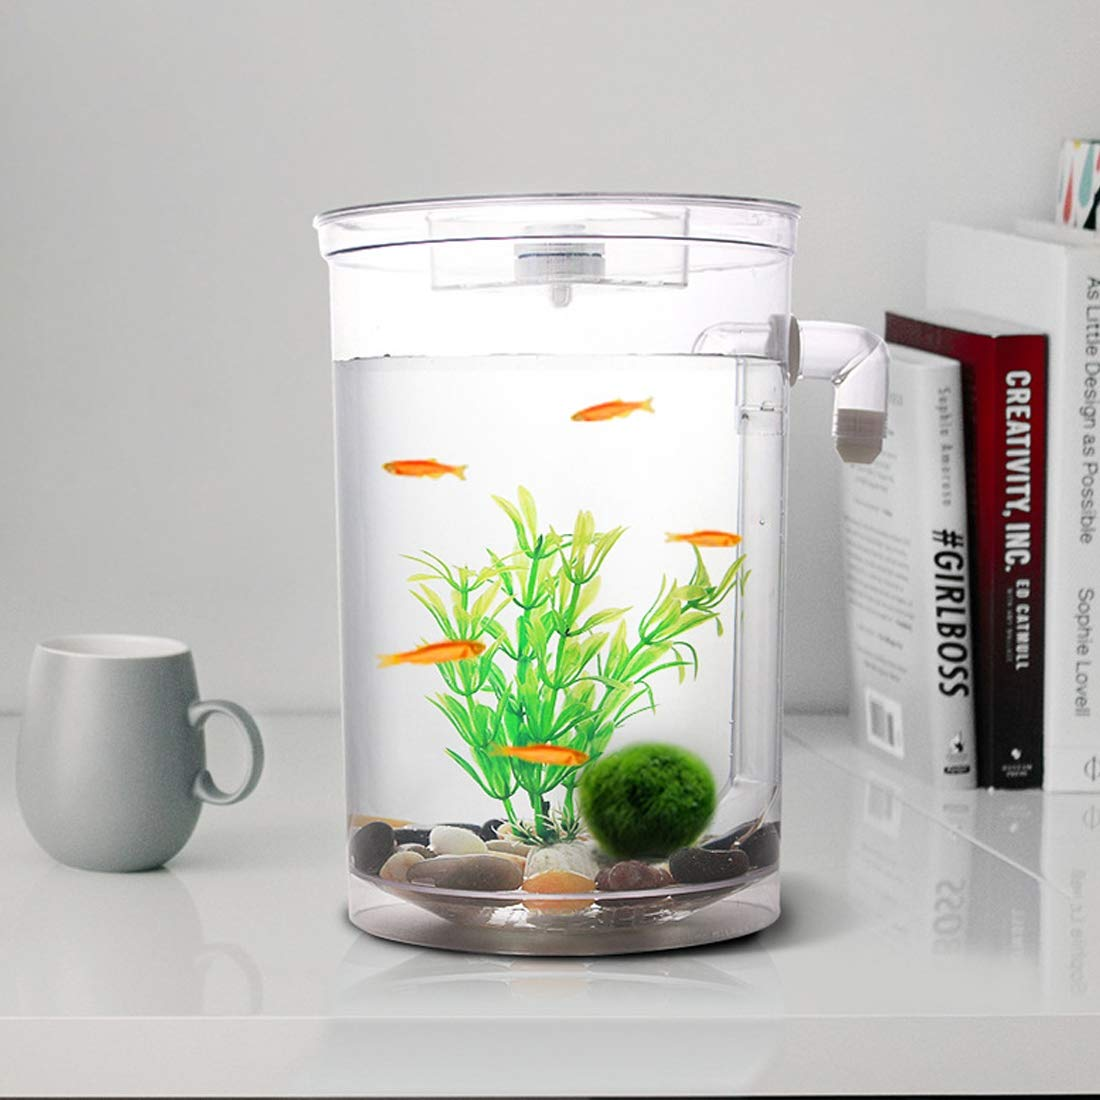 JUUANFDFINGD Fish Tank Decoration Round Plastic Creative Ecological Desktop Mini Aquarium Gold Fish Bowl, Lazy Water Tank with Cobblestone, Tree Plant Grass and LED Light Aquarium Décor by JUUANFDFINGD